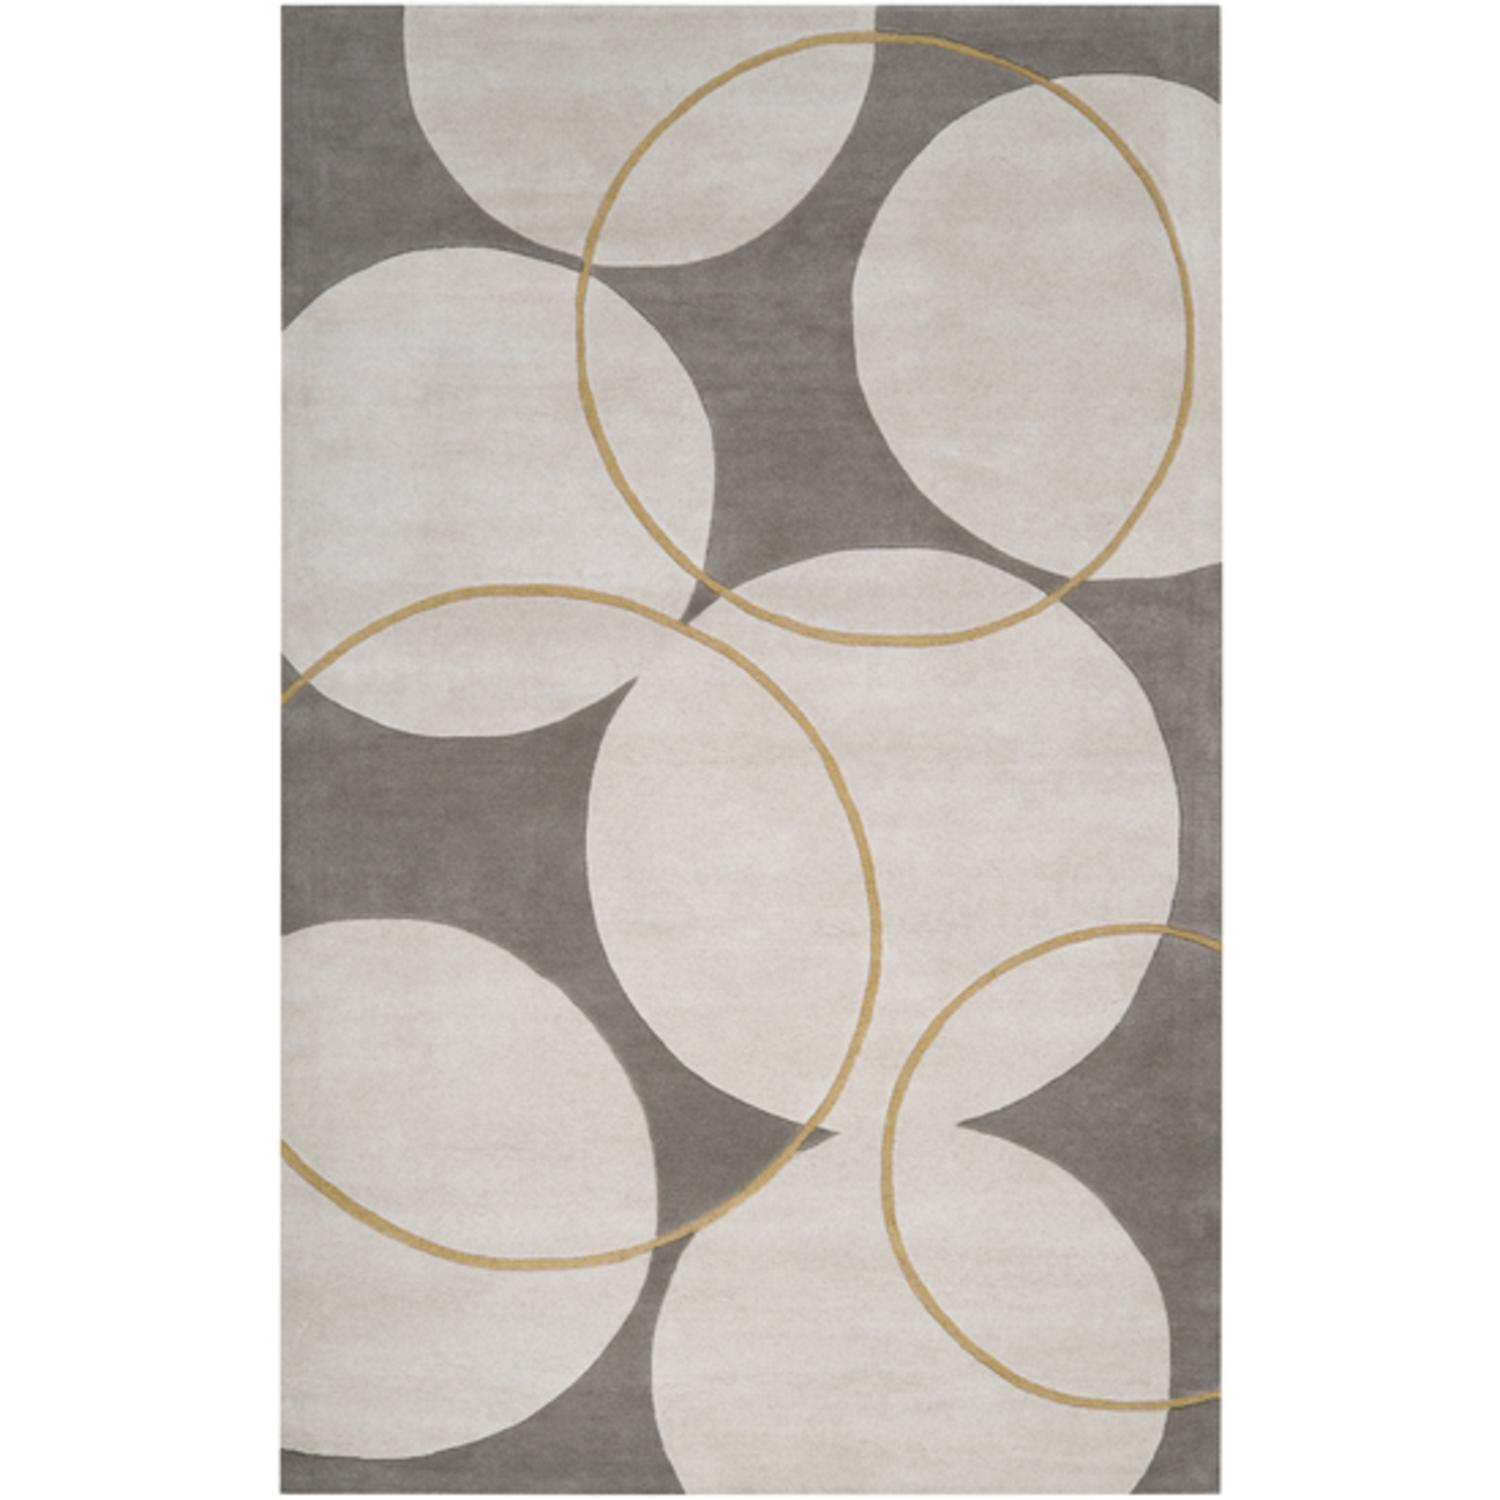 2' x 3' Bubble Spectacular Parchment and Mustard Yellow Wool Area Throw Rug